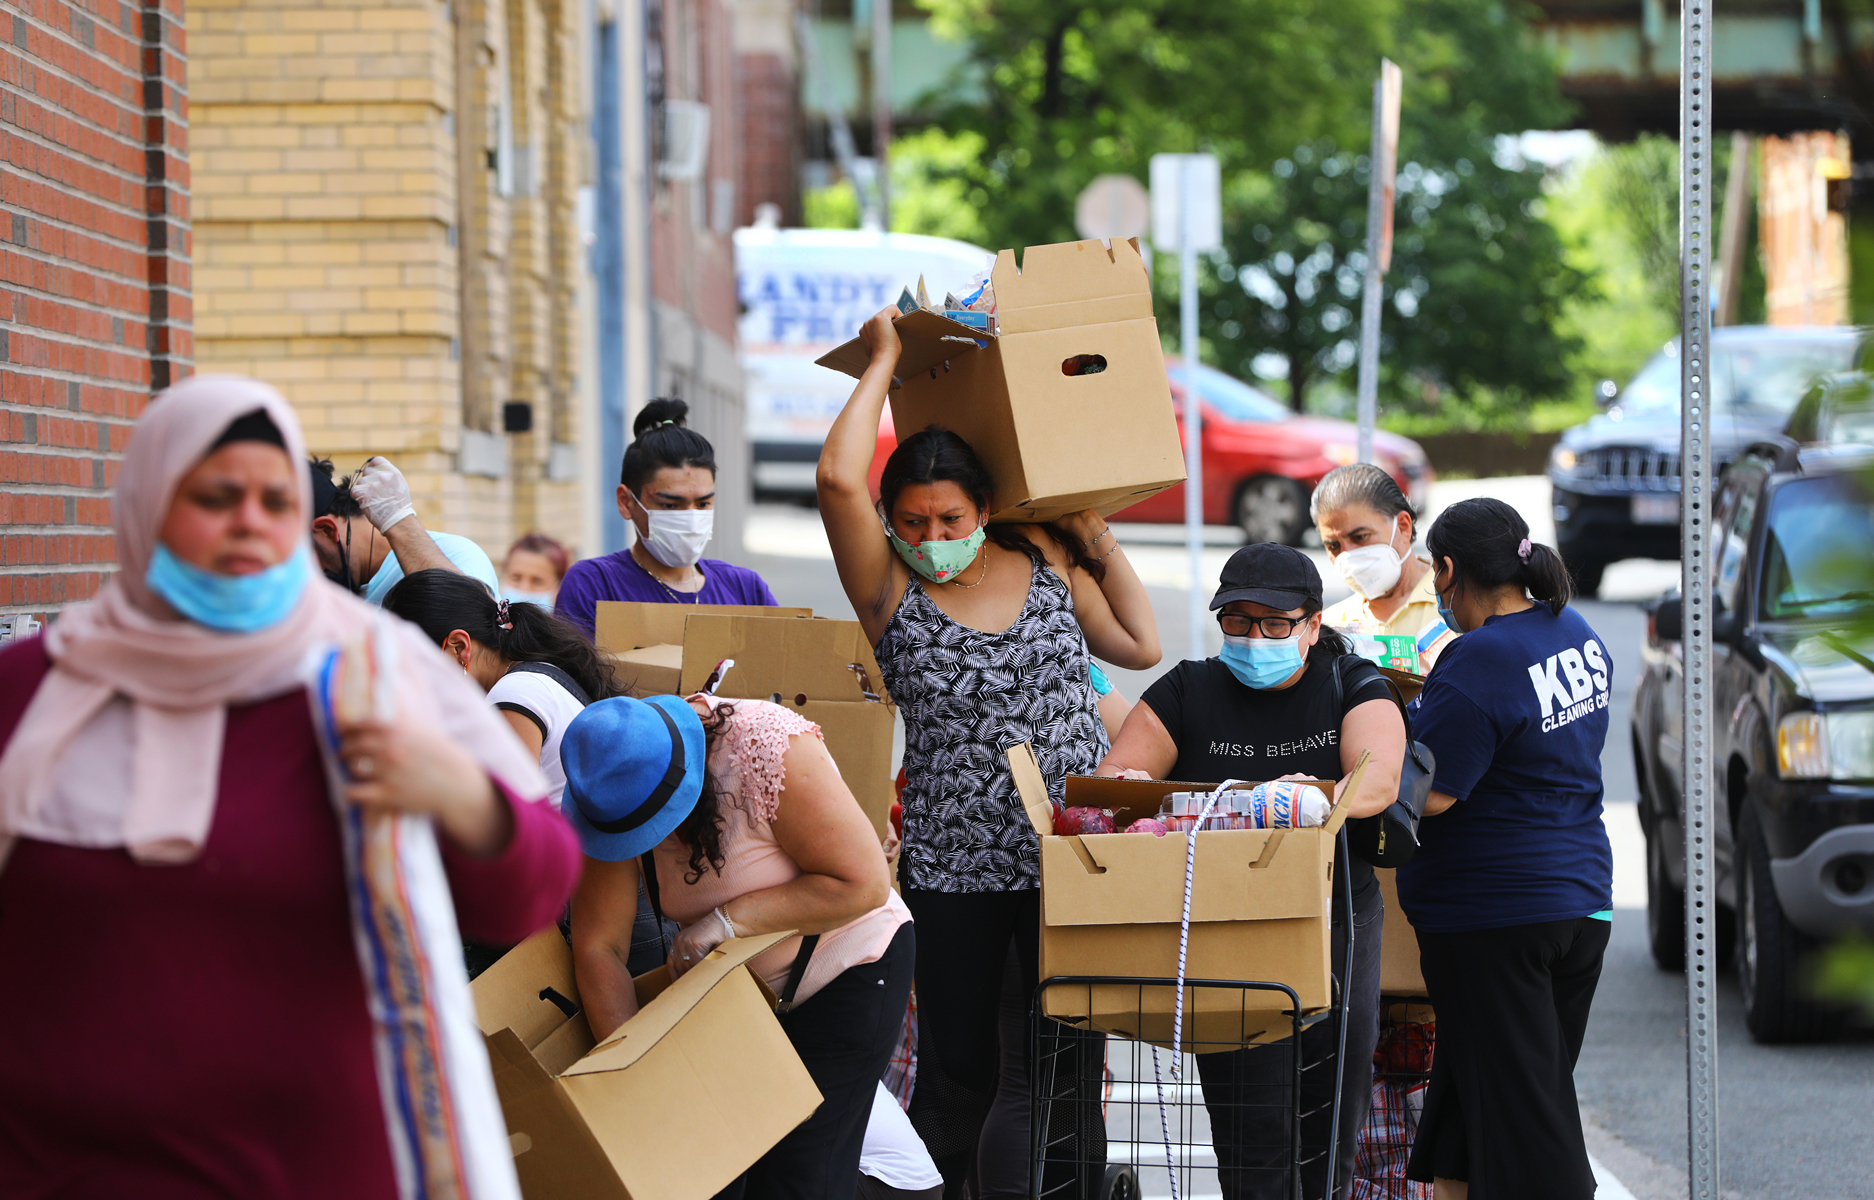 People get provisions from the food pantry line at the Chelsea Collaborative during the coronavirus pandemic in Chelsea, MA on June 4, 2020.